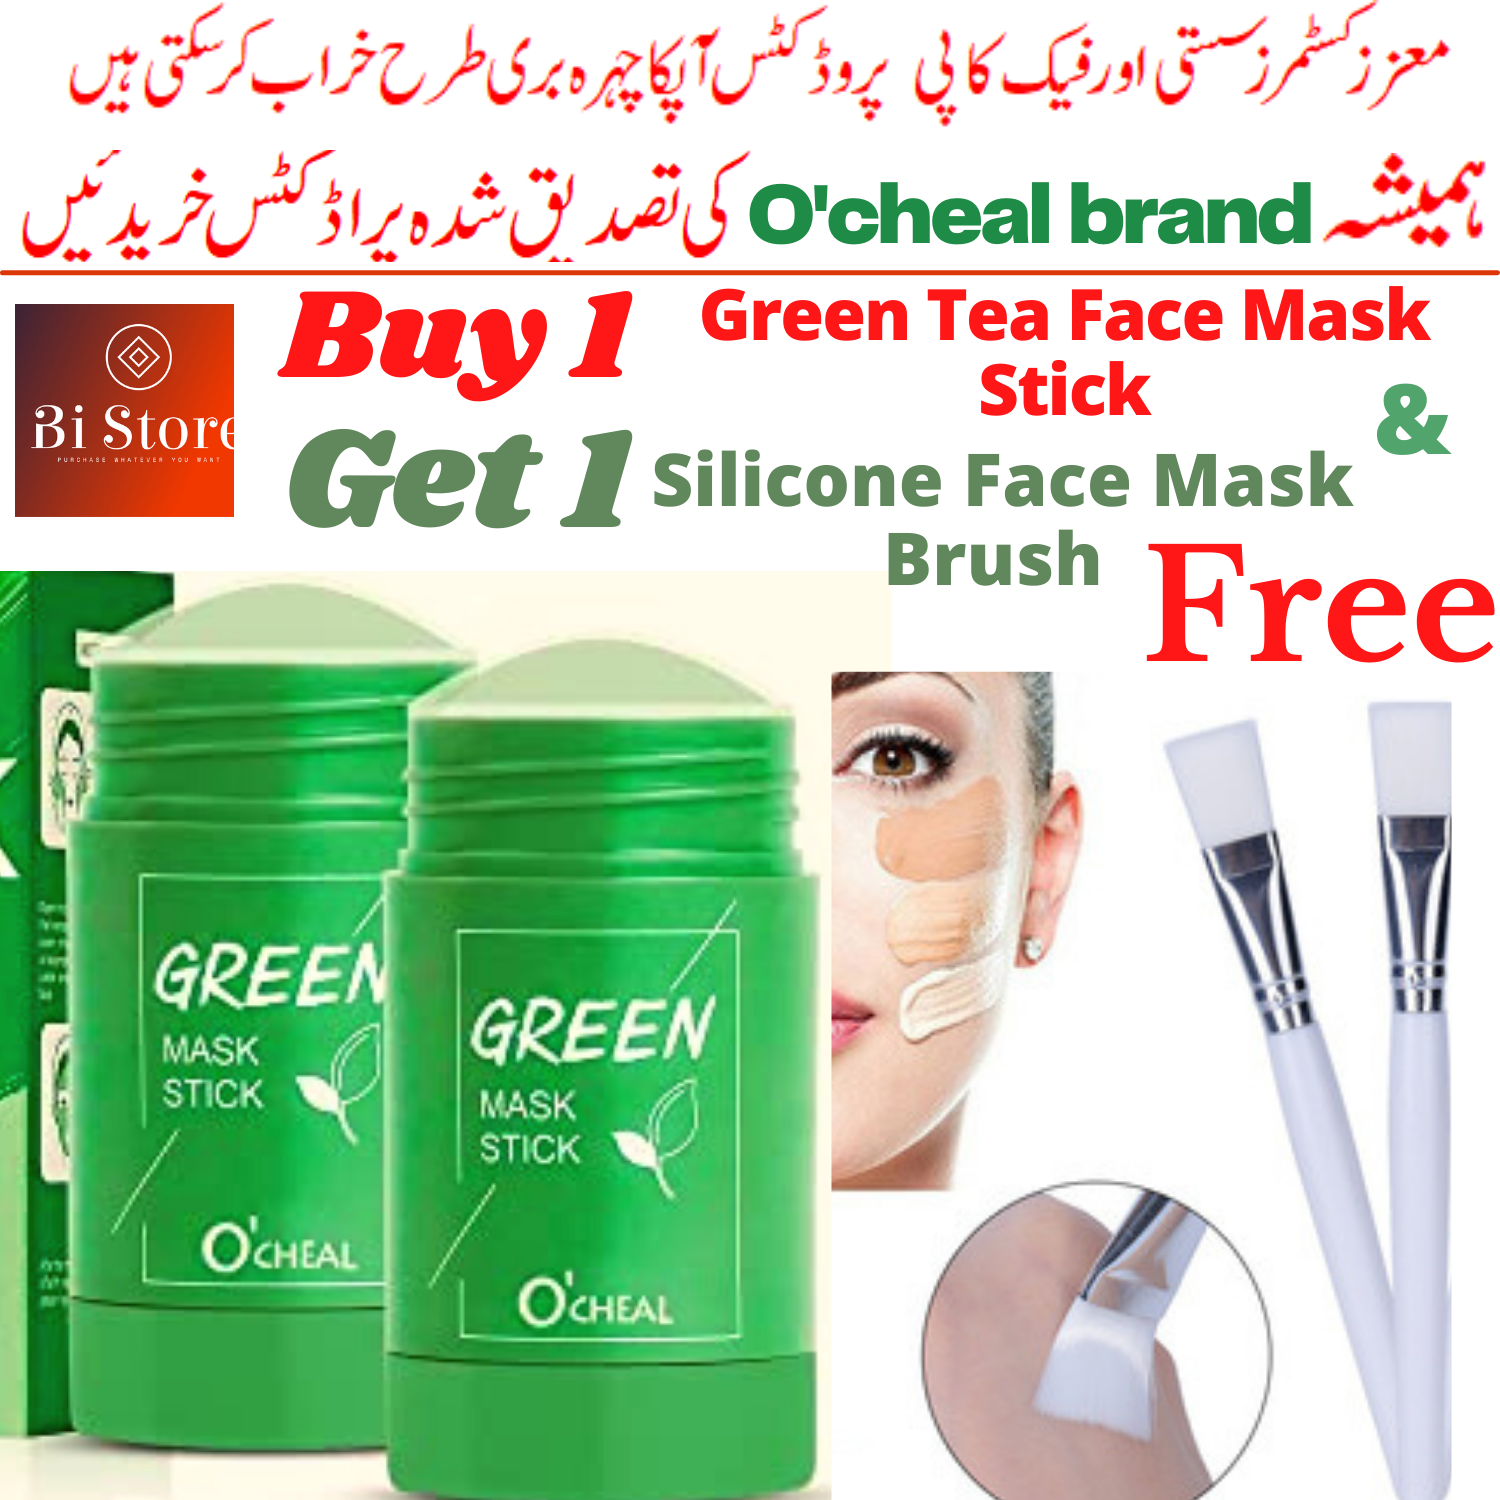 Green Tea Face Cleansing Mask Purifying Clay Stick Mask Oil Control Skin Care Anti-Acne Blackhead Mud Mask